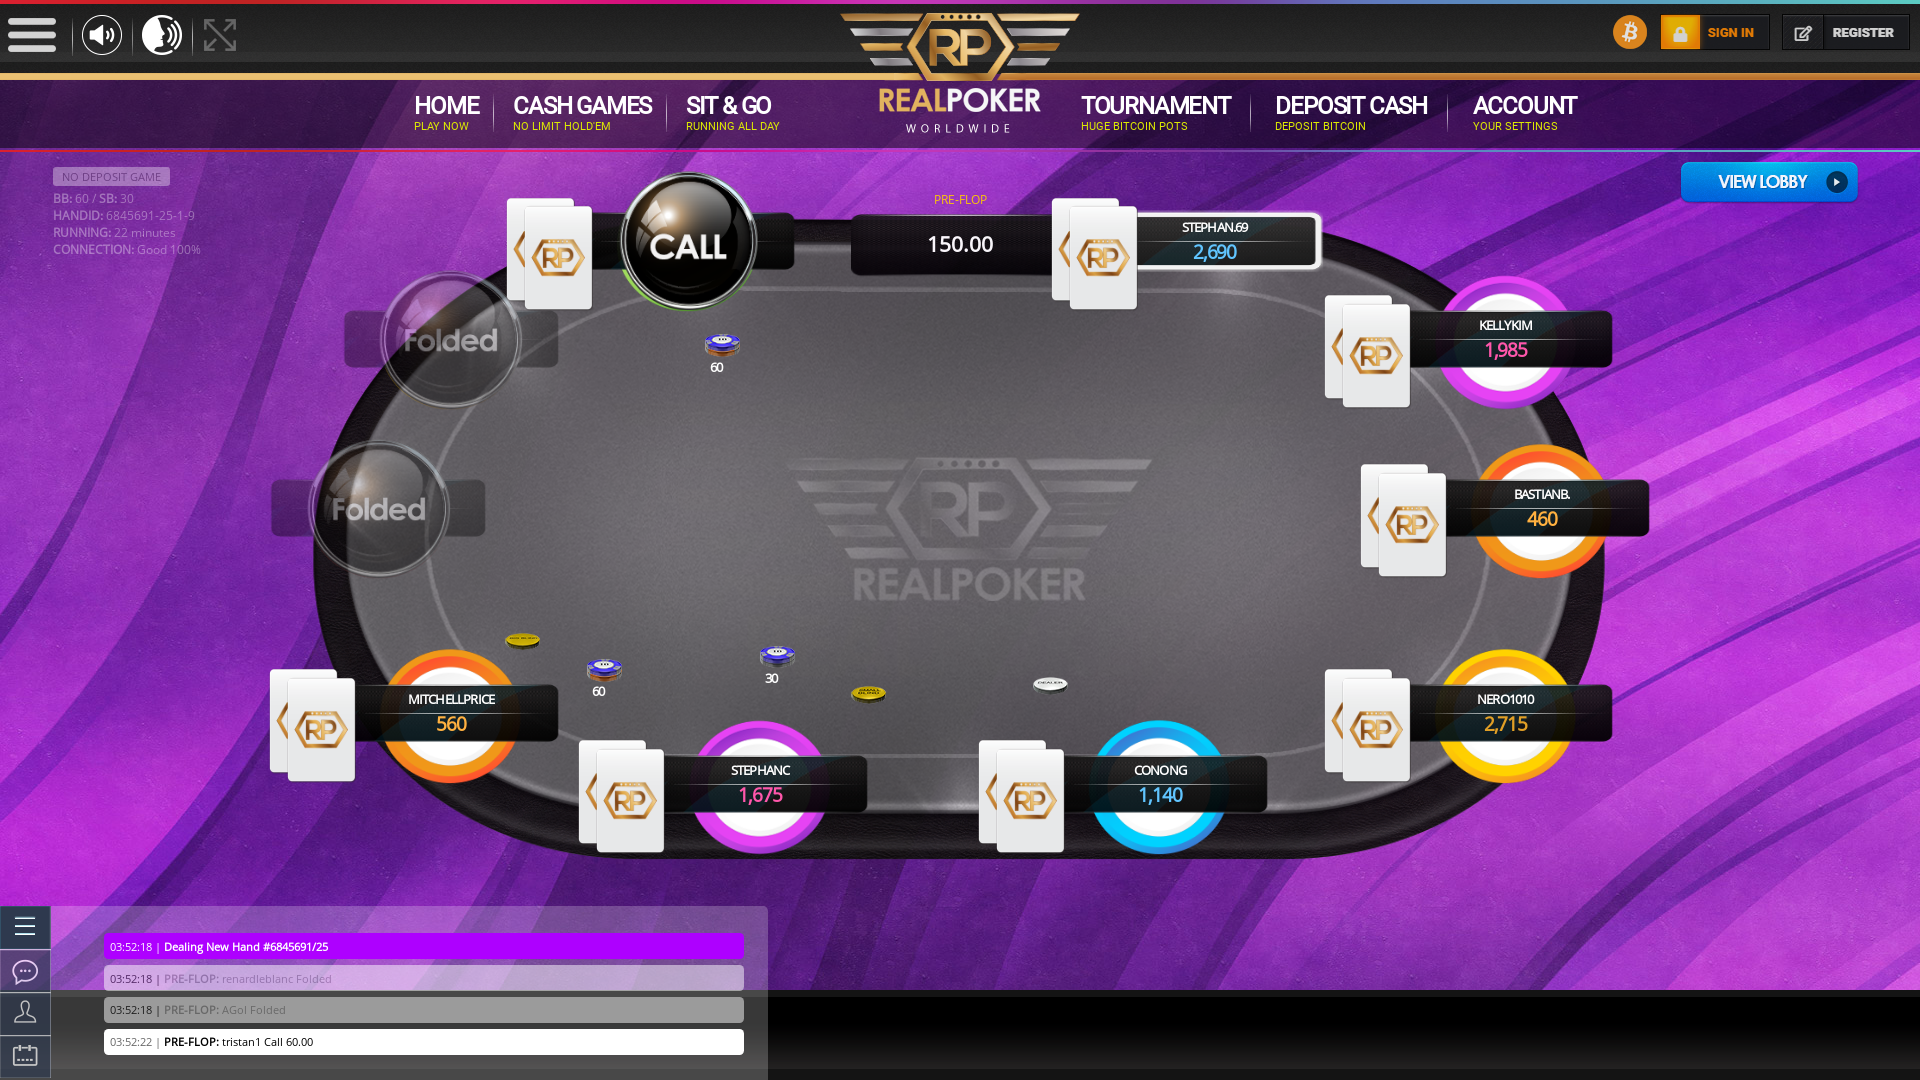 Online poker on a 10 player table in the 22nd minute match up